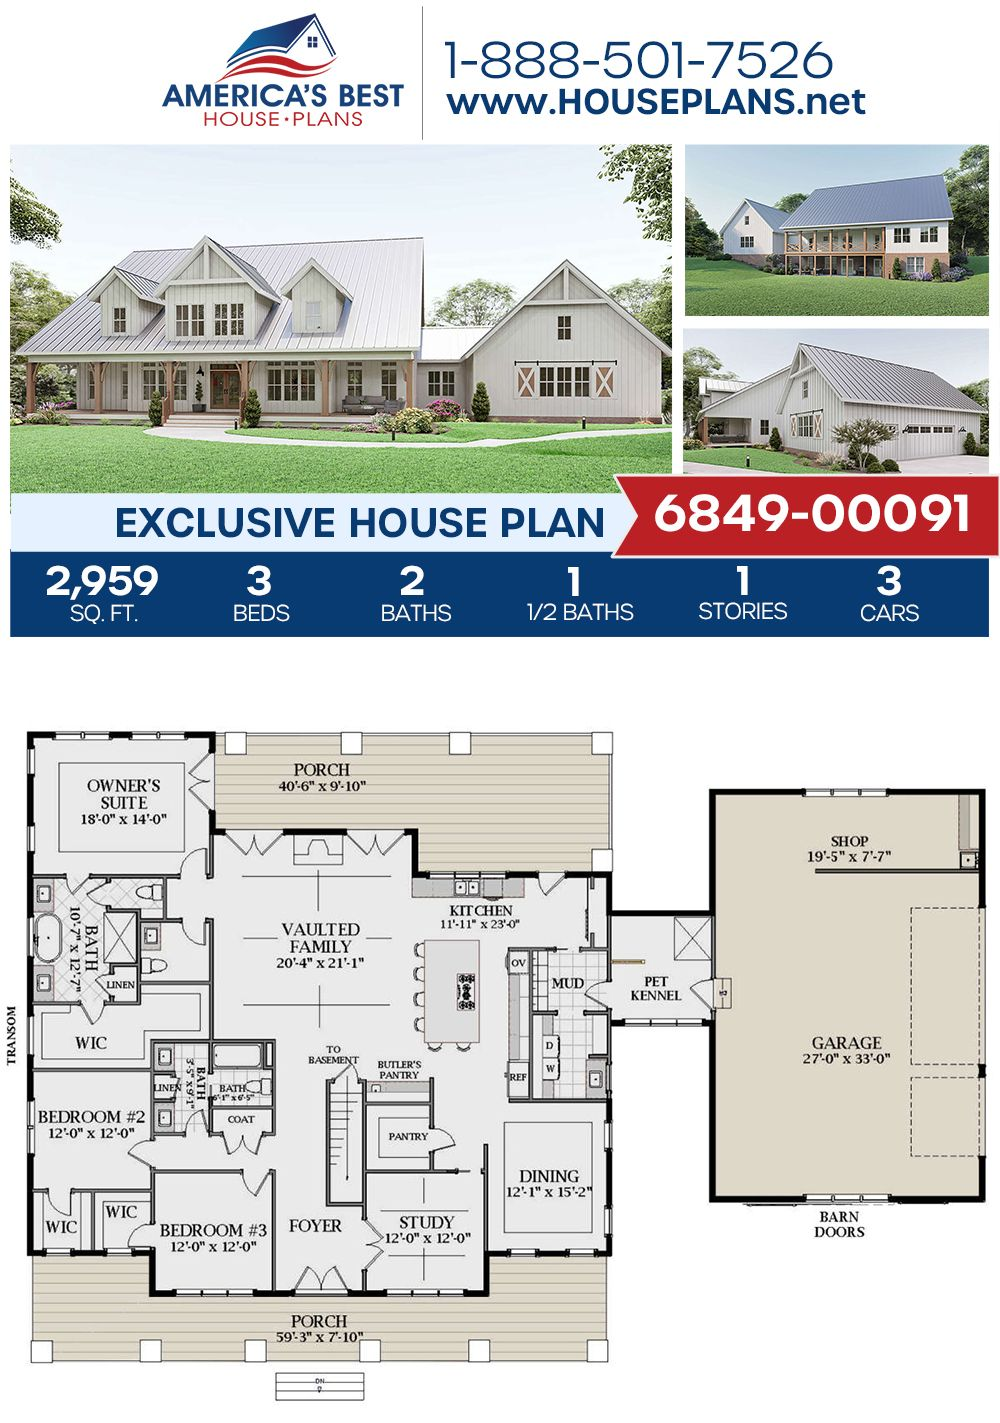 House Plan 6849 00091 Modern Farmhouse Plan 2 959 Square Feet 3 Bedrooms 2 5 Bathrooms In 2020 Exclusive House Plan Modern Farmhouse Plans Craftsman House Plans